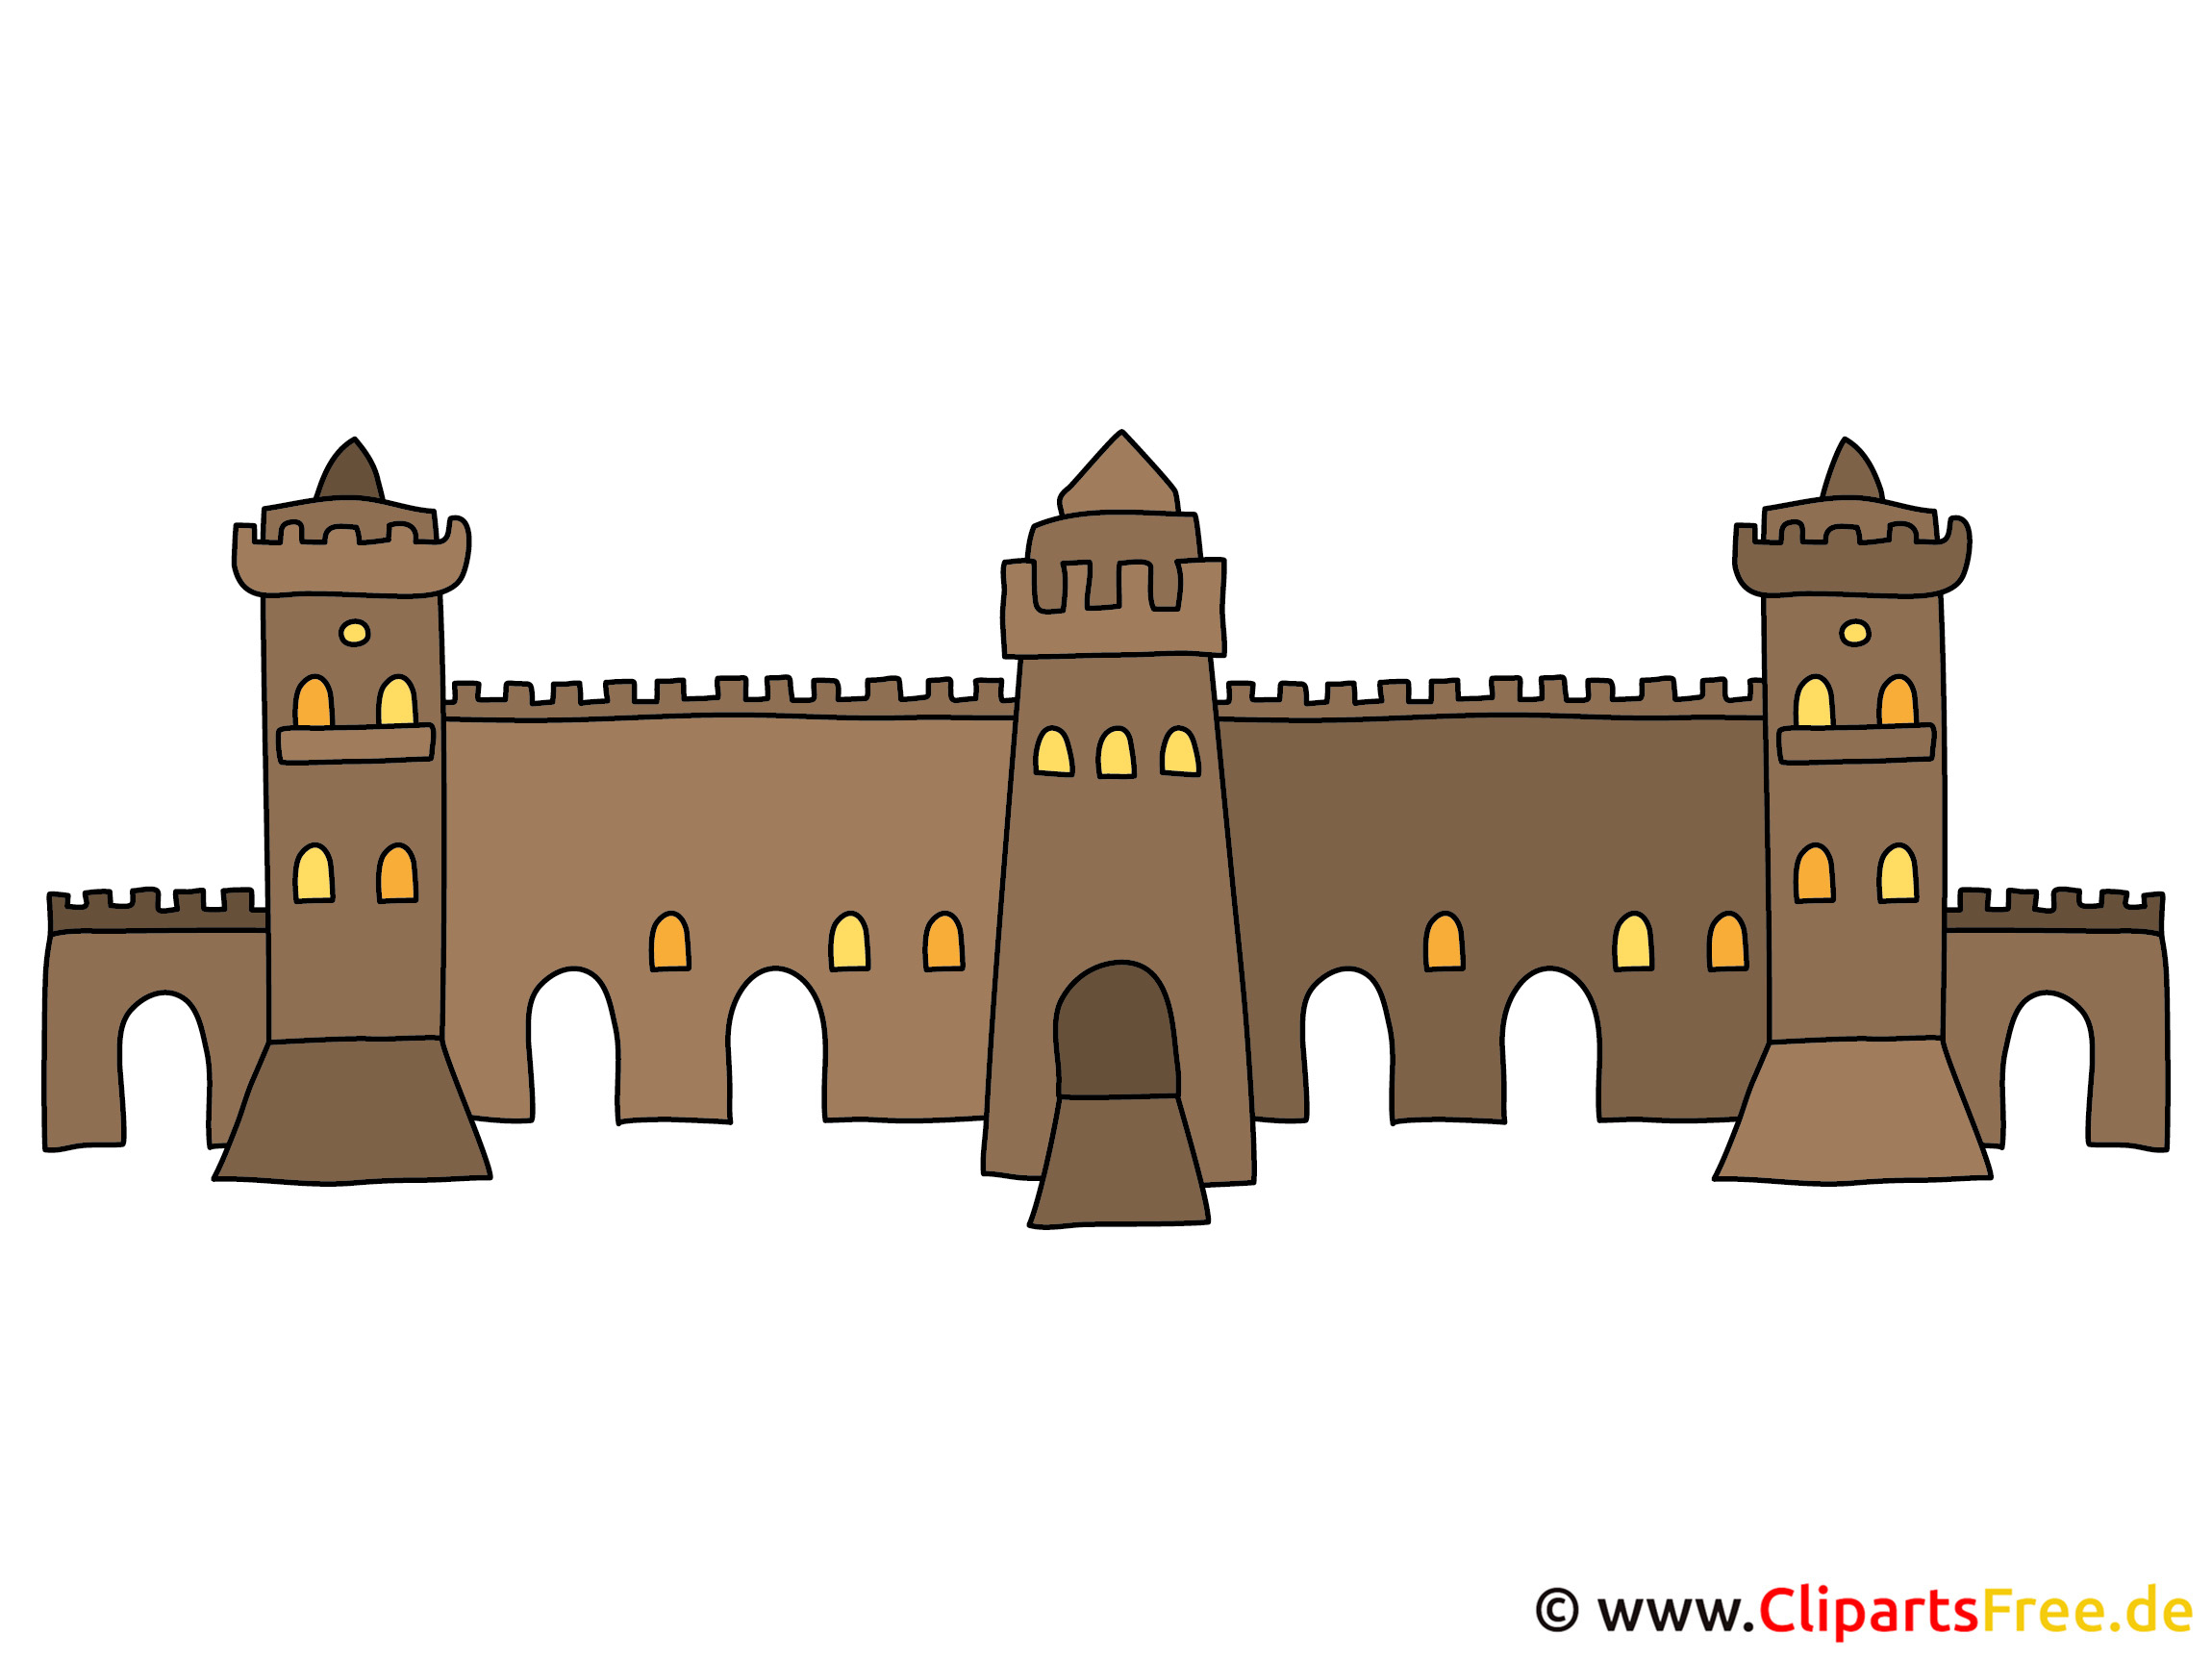 Burgmauer Bild, Clipart, Illustration